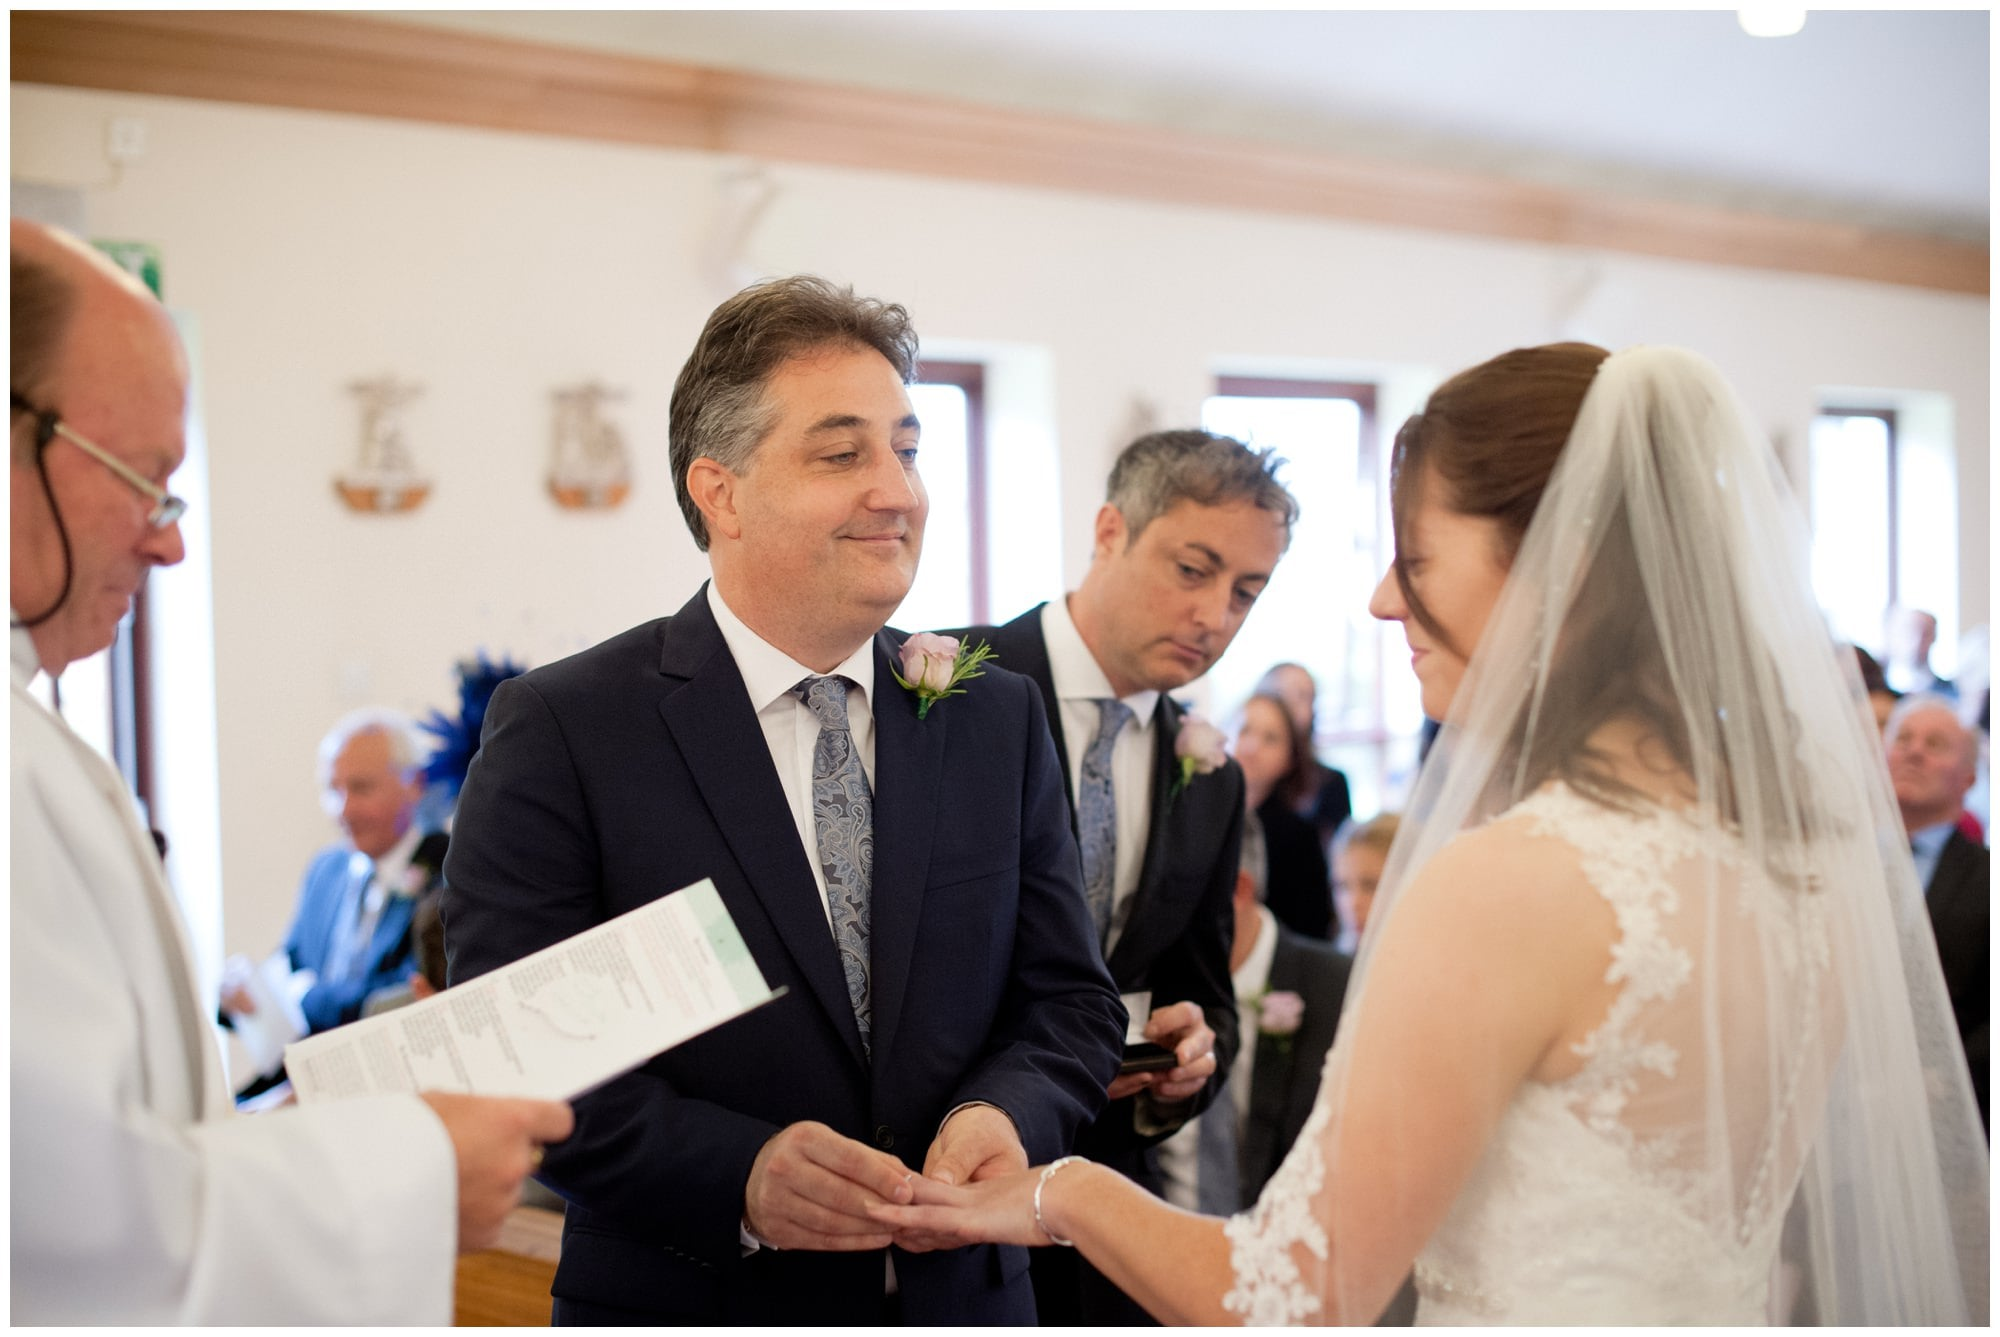 Exchanging Rings at Whitchurch Wedding